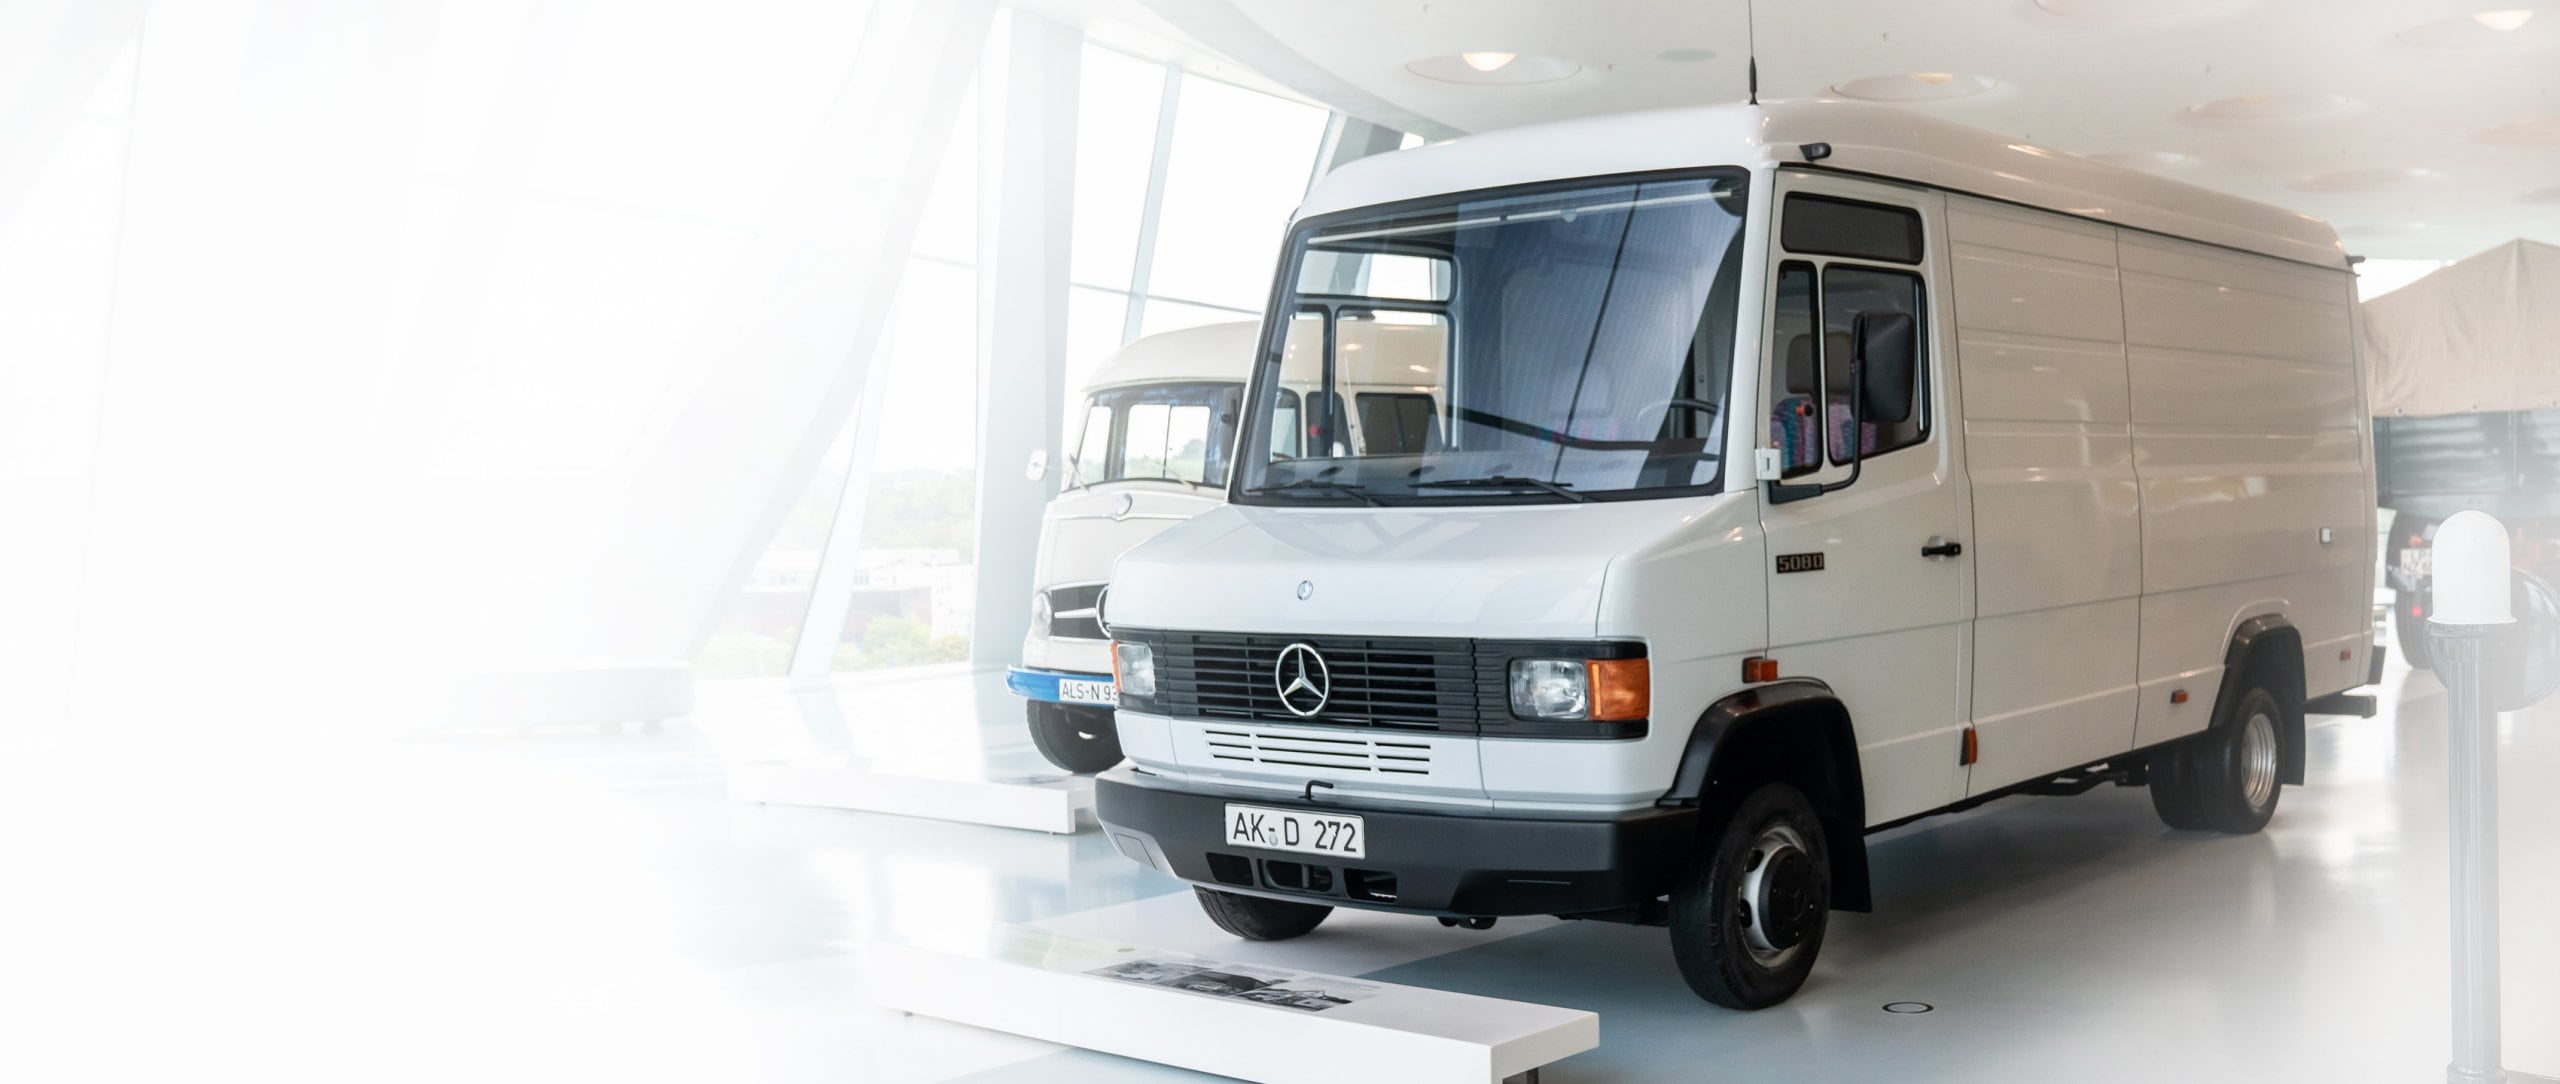 Mercedes-Benz 508 D panel van.